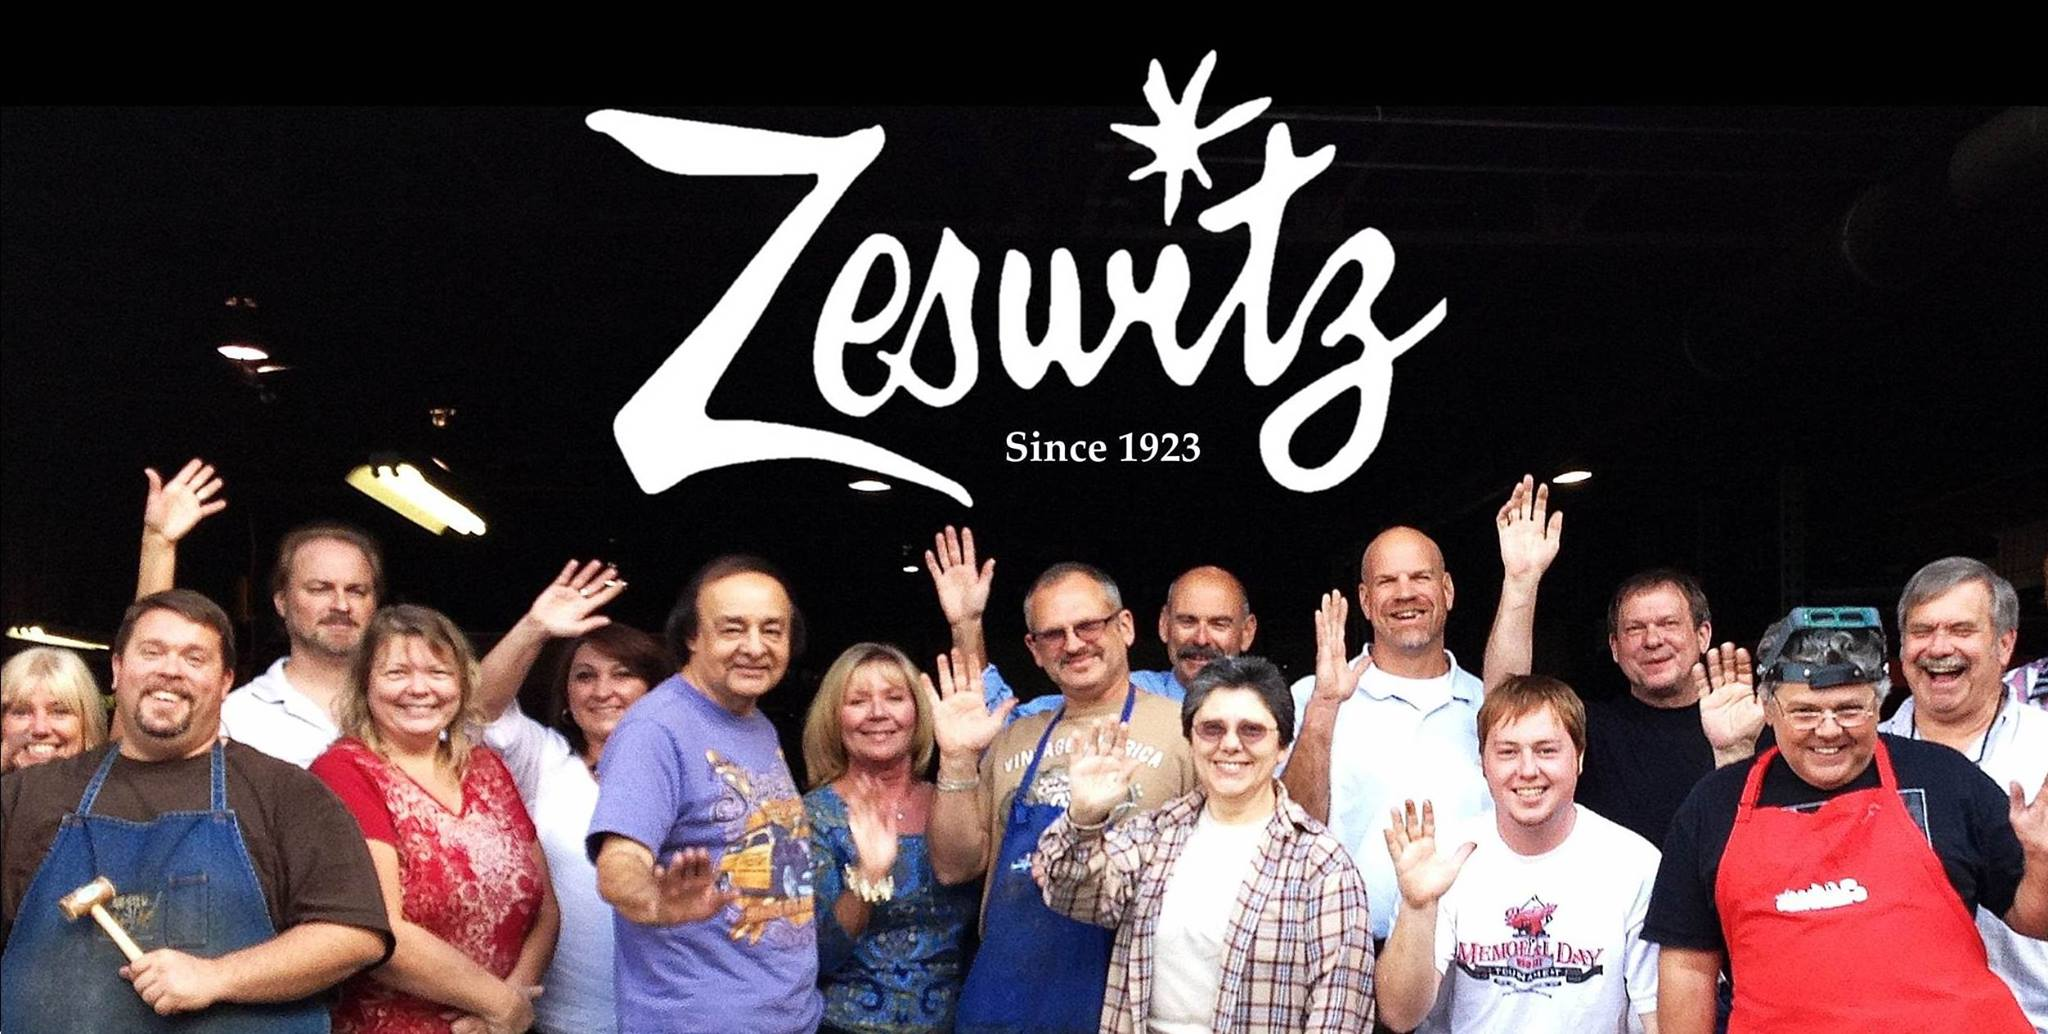 Zeswitz Musicis back, and it's better than ever!